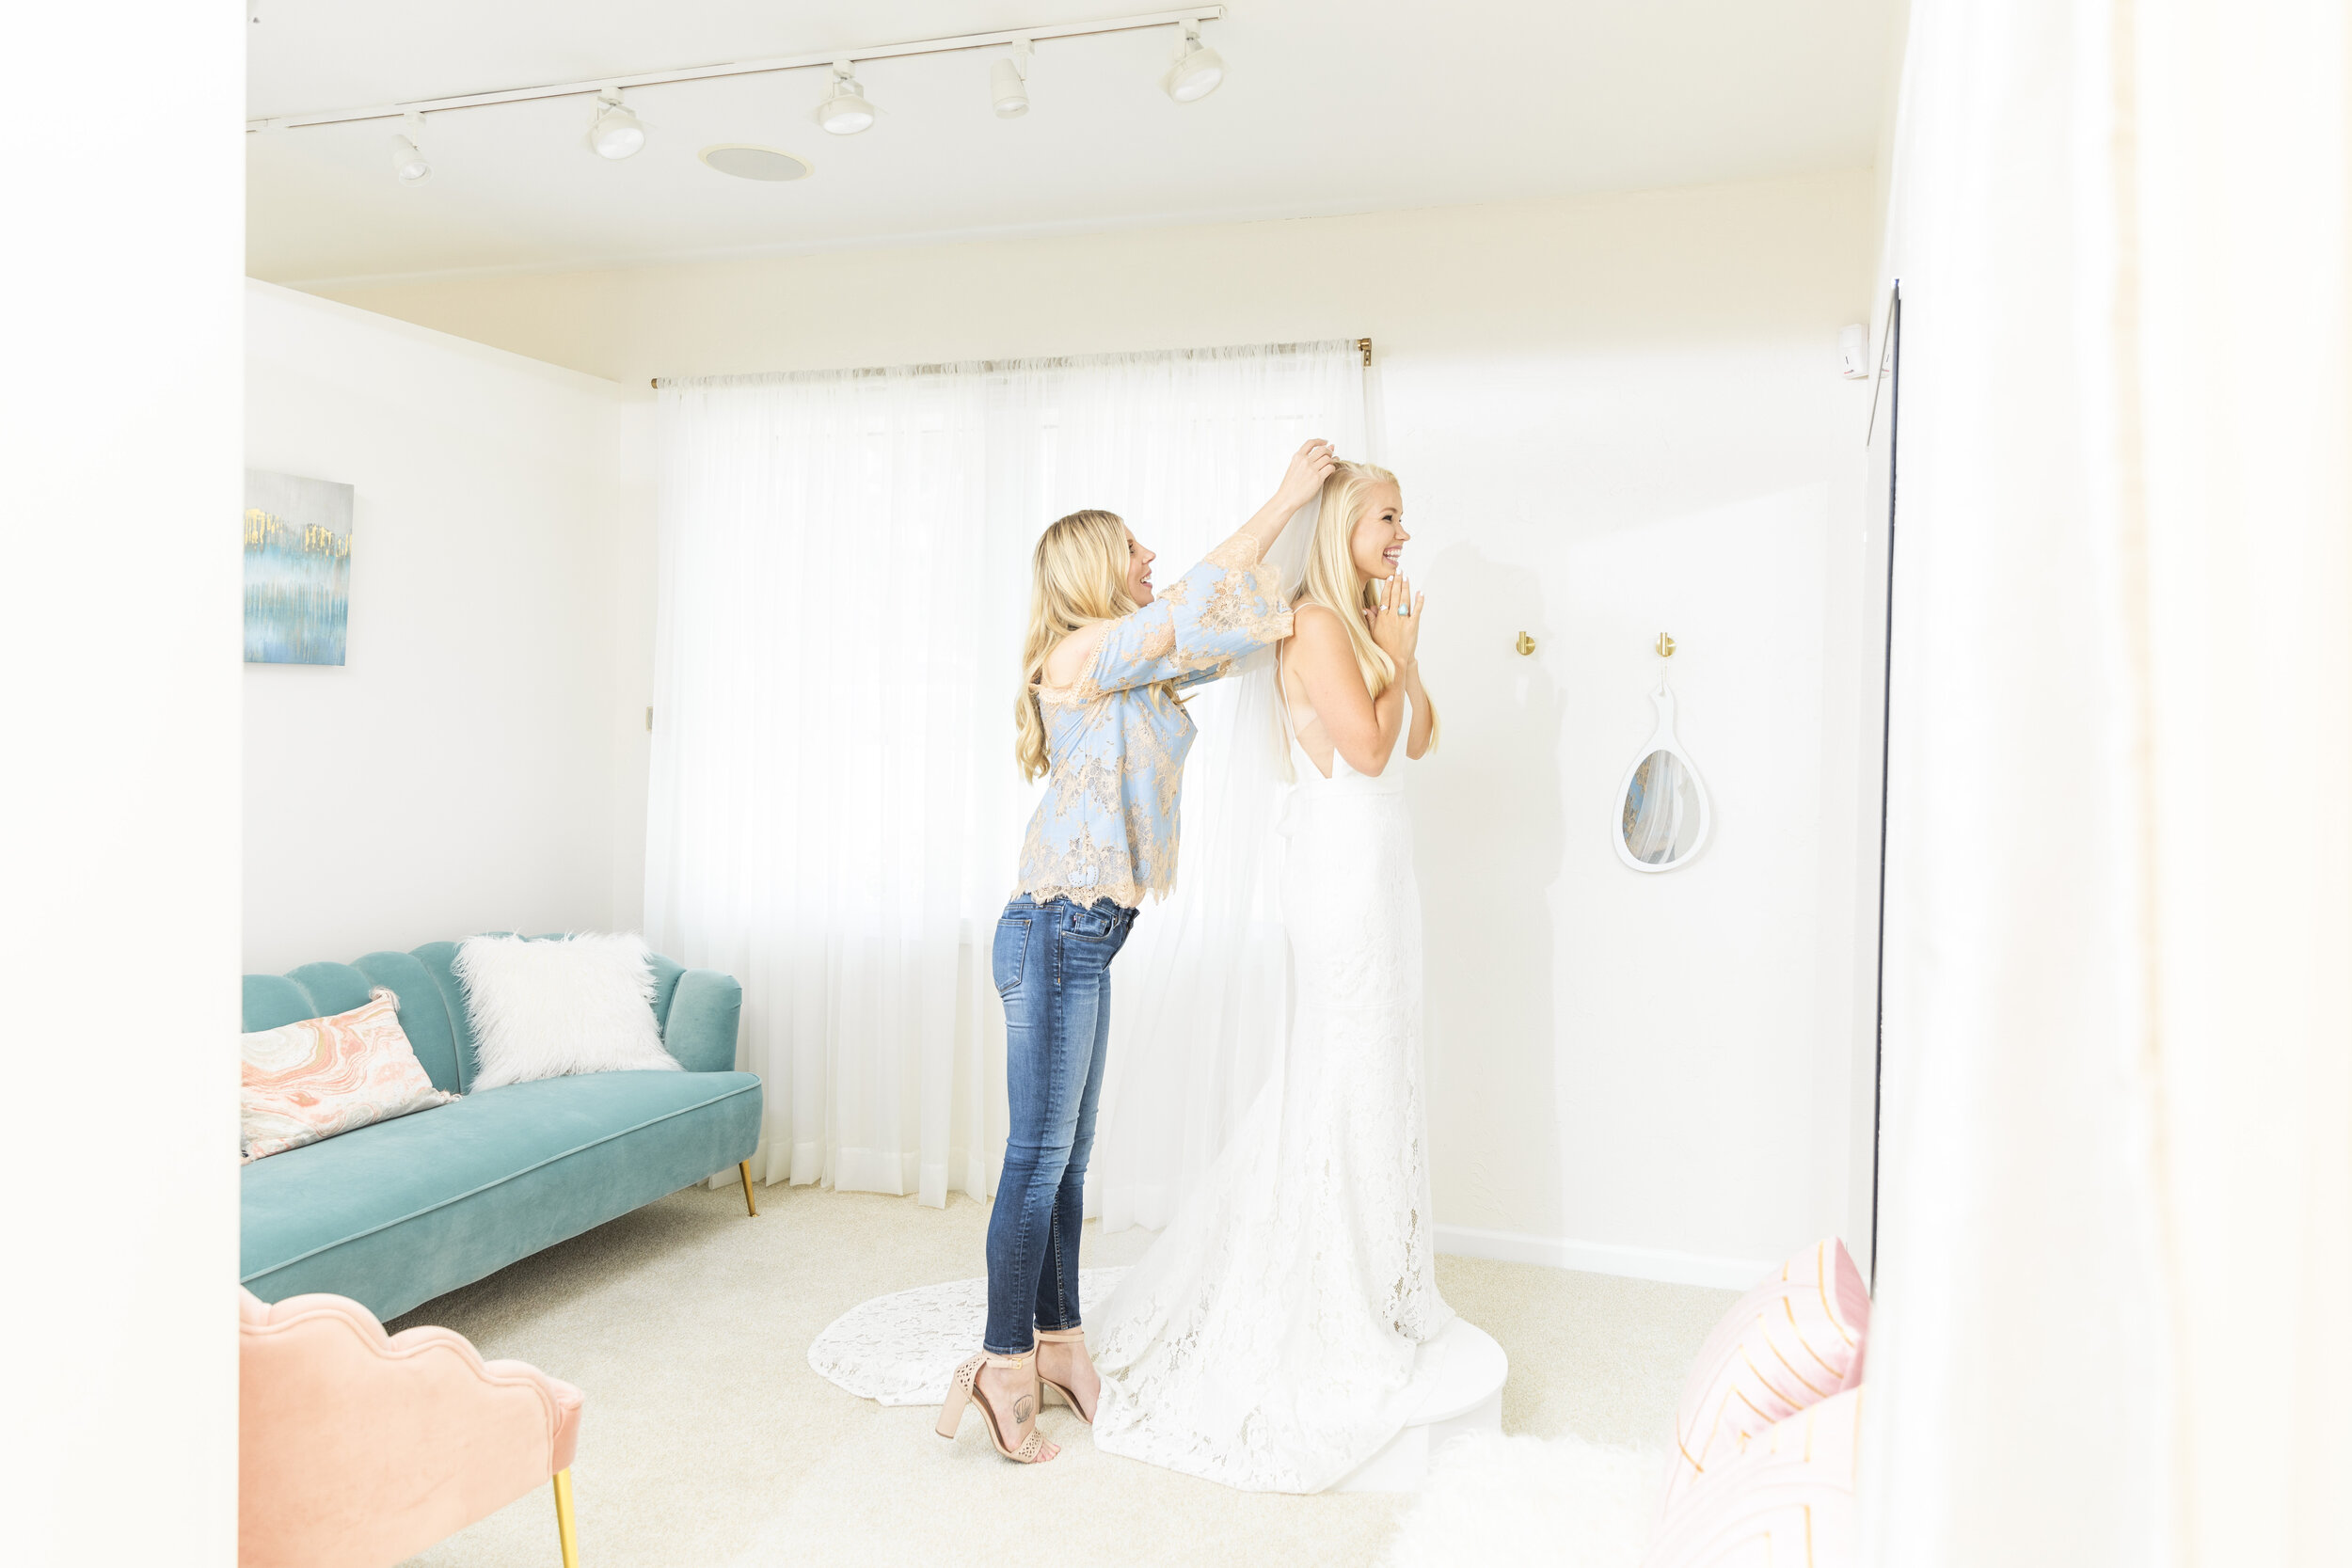 wedding outfit hacks a unique veil can change the whole look show your personality through accessories wear uncommon shoes wedding jewelry unique wedding how too's tips and tricks for the unique bride enhance wedding outfit bridal hacks provo utah #tipstomakeyourgownunique #howtostyleyourweddingdress #jewelry #belts #earrings #unique #bridetipsandtricks #bracelets #necklaces #provoutah #claritylane